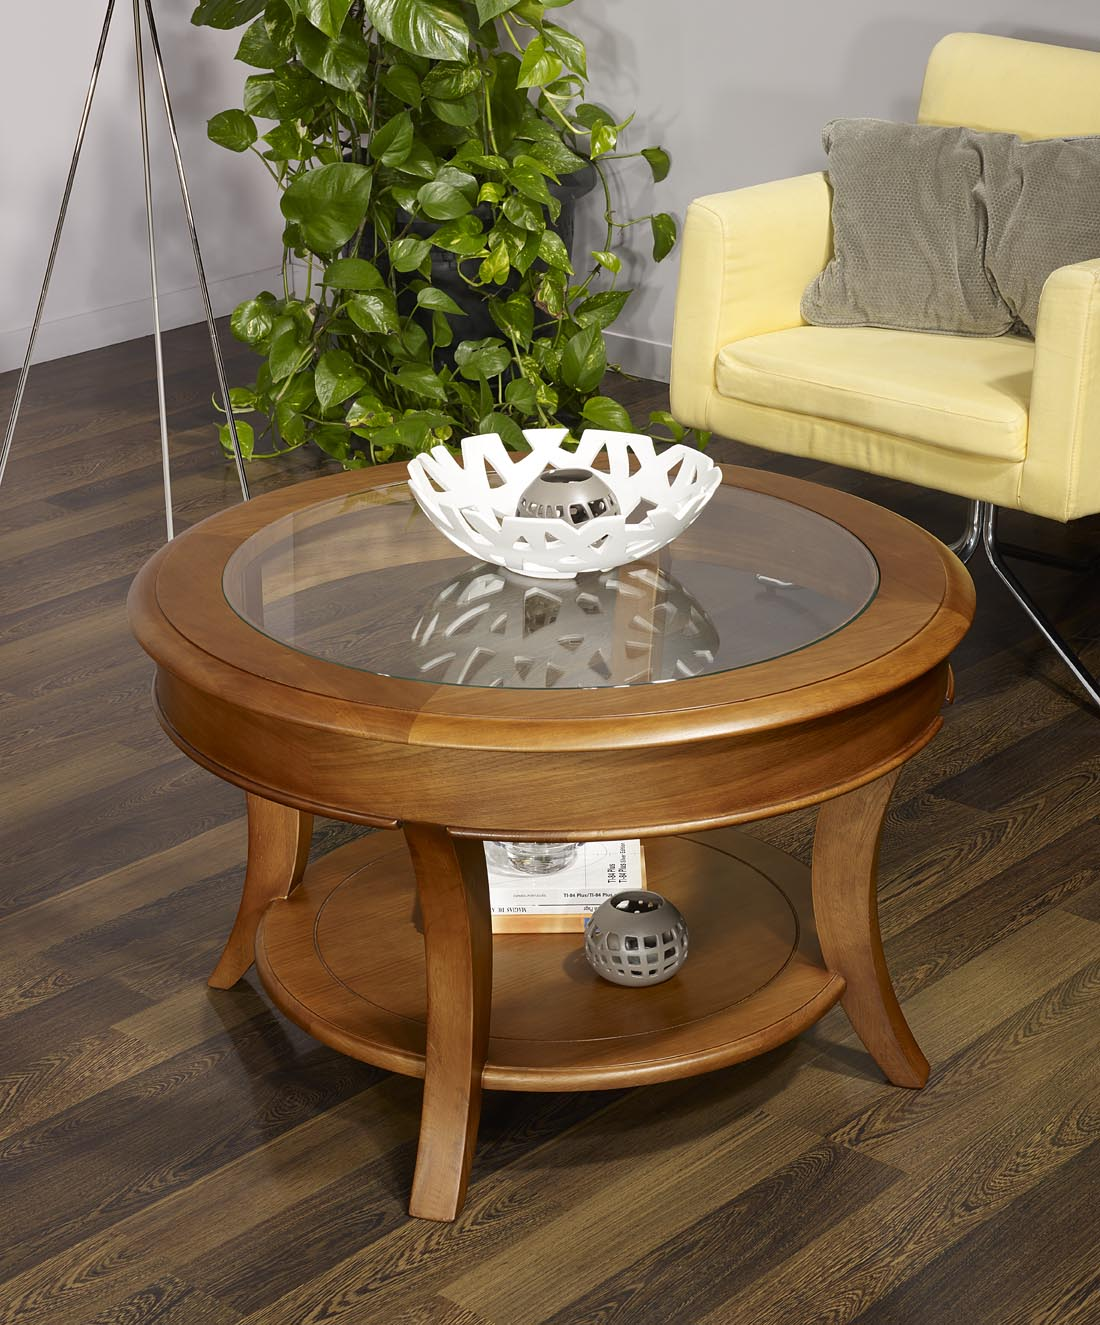 table basse ronde bois massif id es de d coration. Black Bedroom Furniture Sets. Home Design Ideas